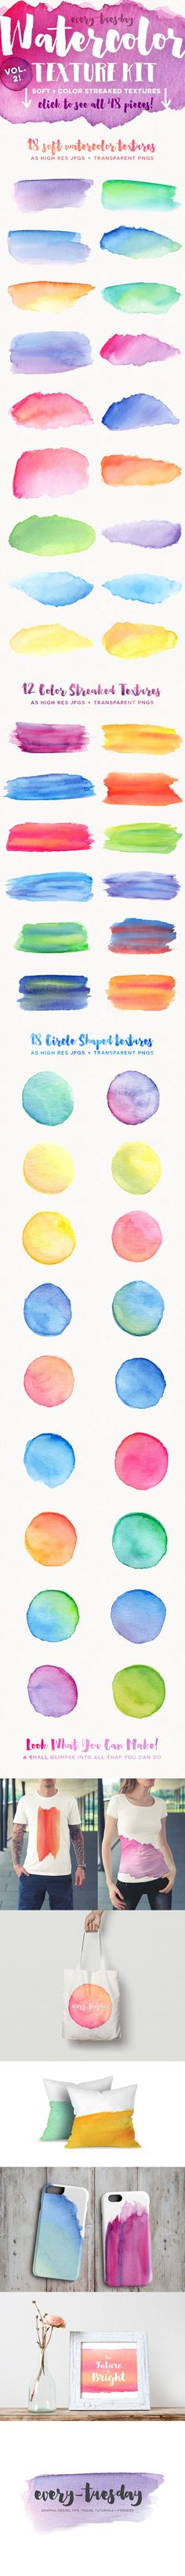 The watercolor trend! Watercolor Texture Kit Vol. 2 by everytuesday on Creative Market